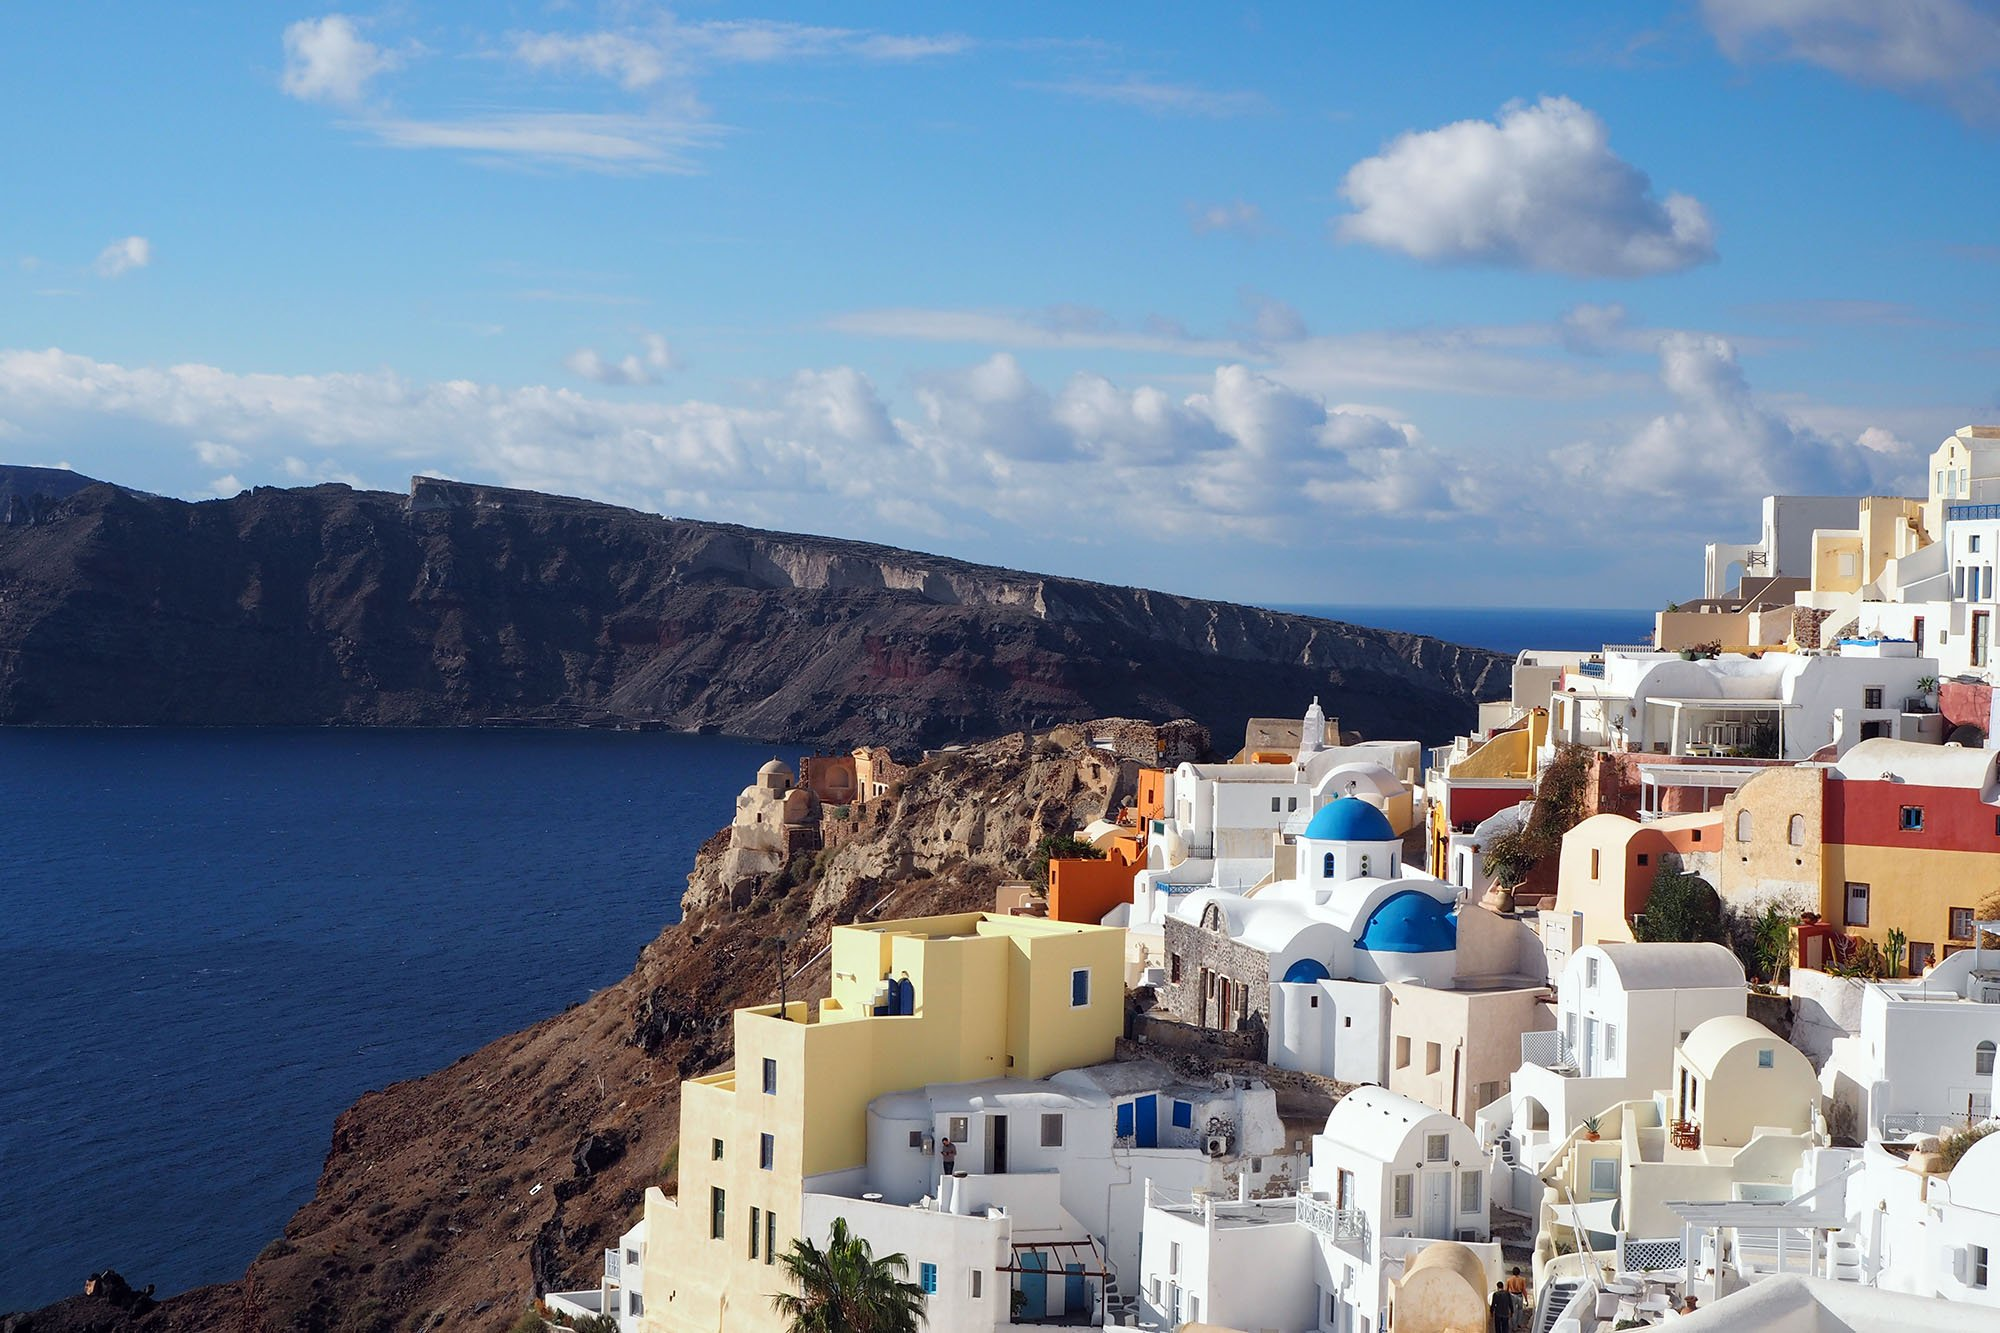 Oia for the houses on the cliff